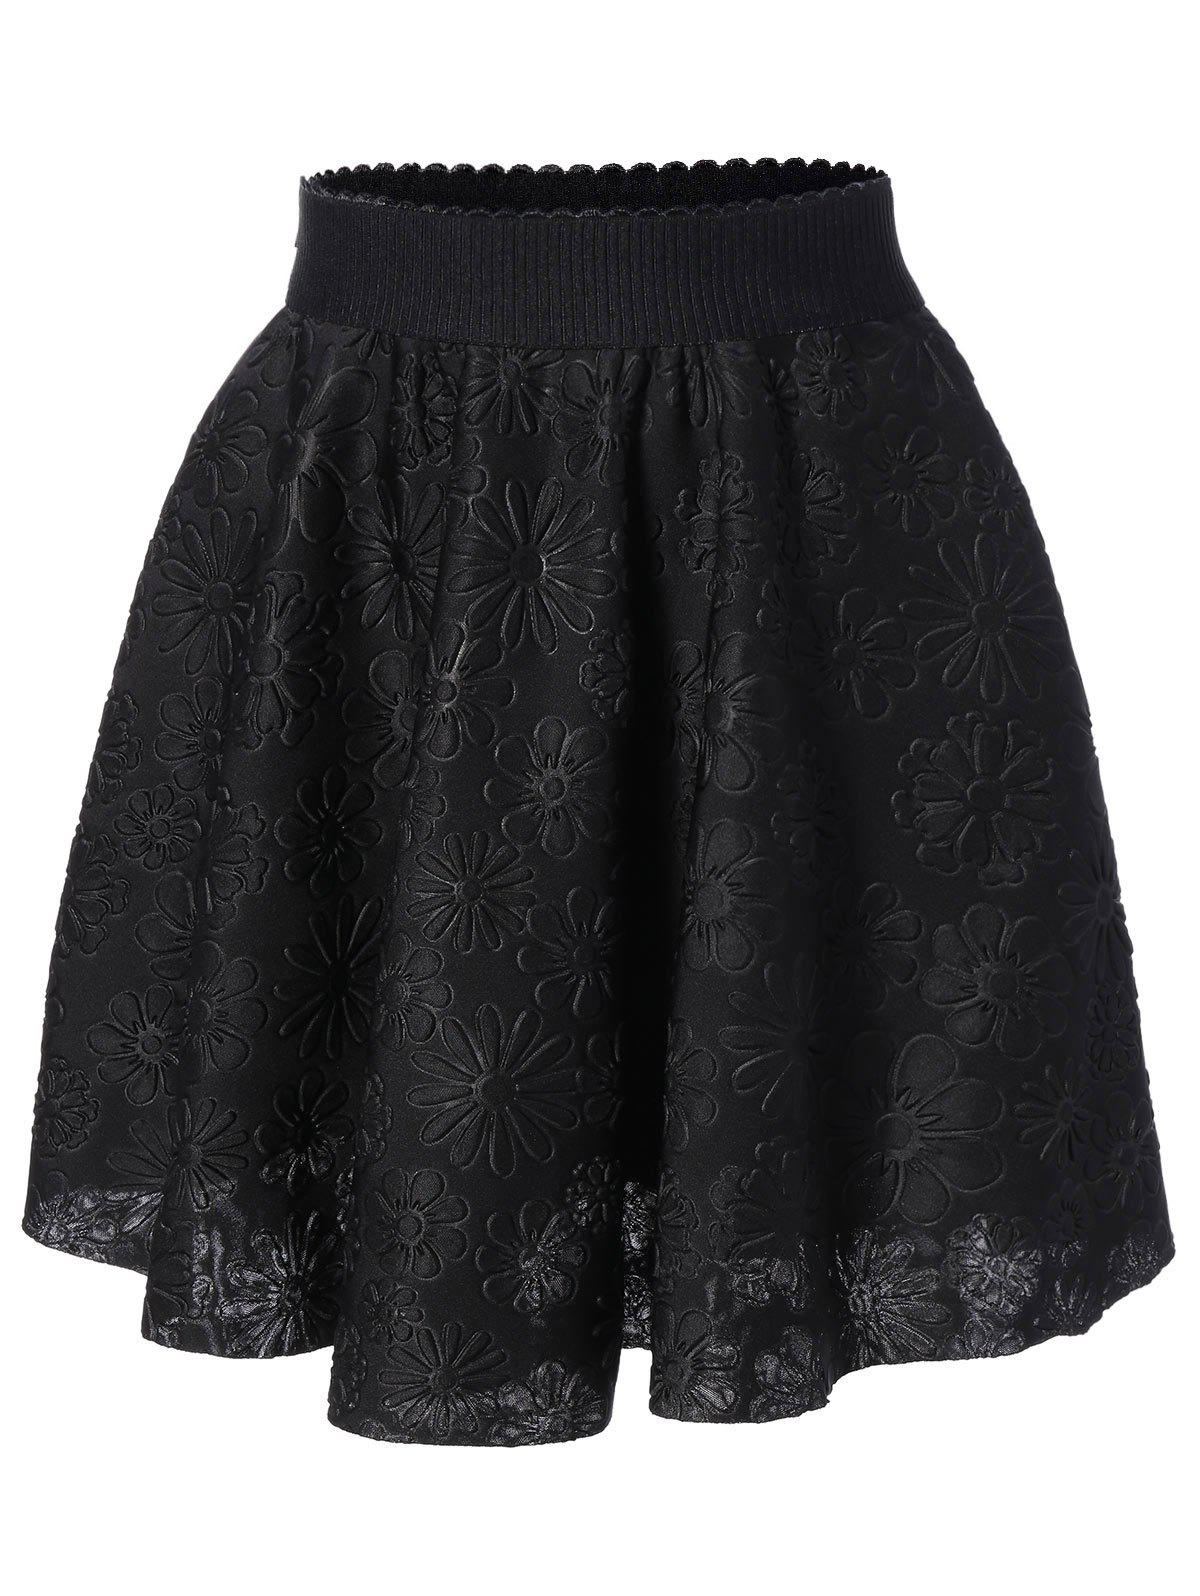 High Waisted Jacquard Flare SkirtWomen<br><br><br>Size: ONE SIZE<br>Color: BLACK